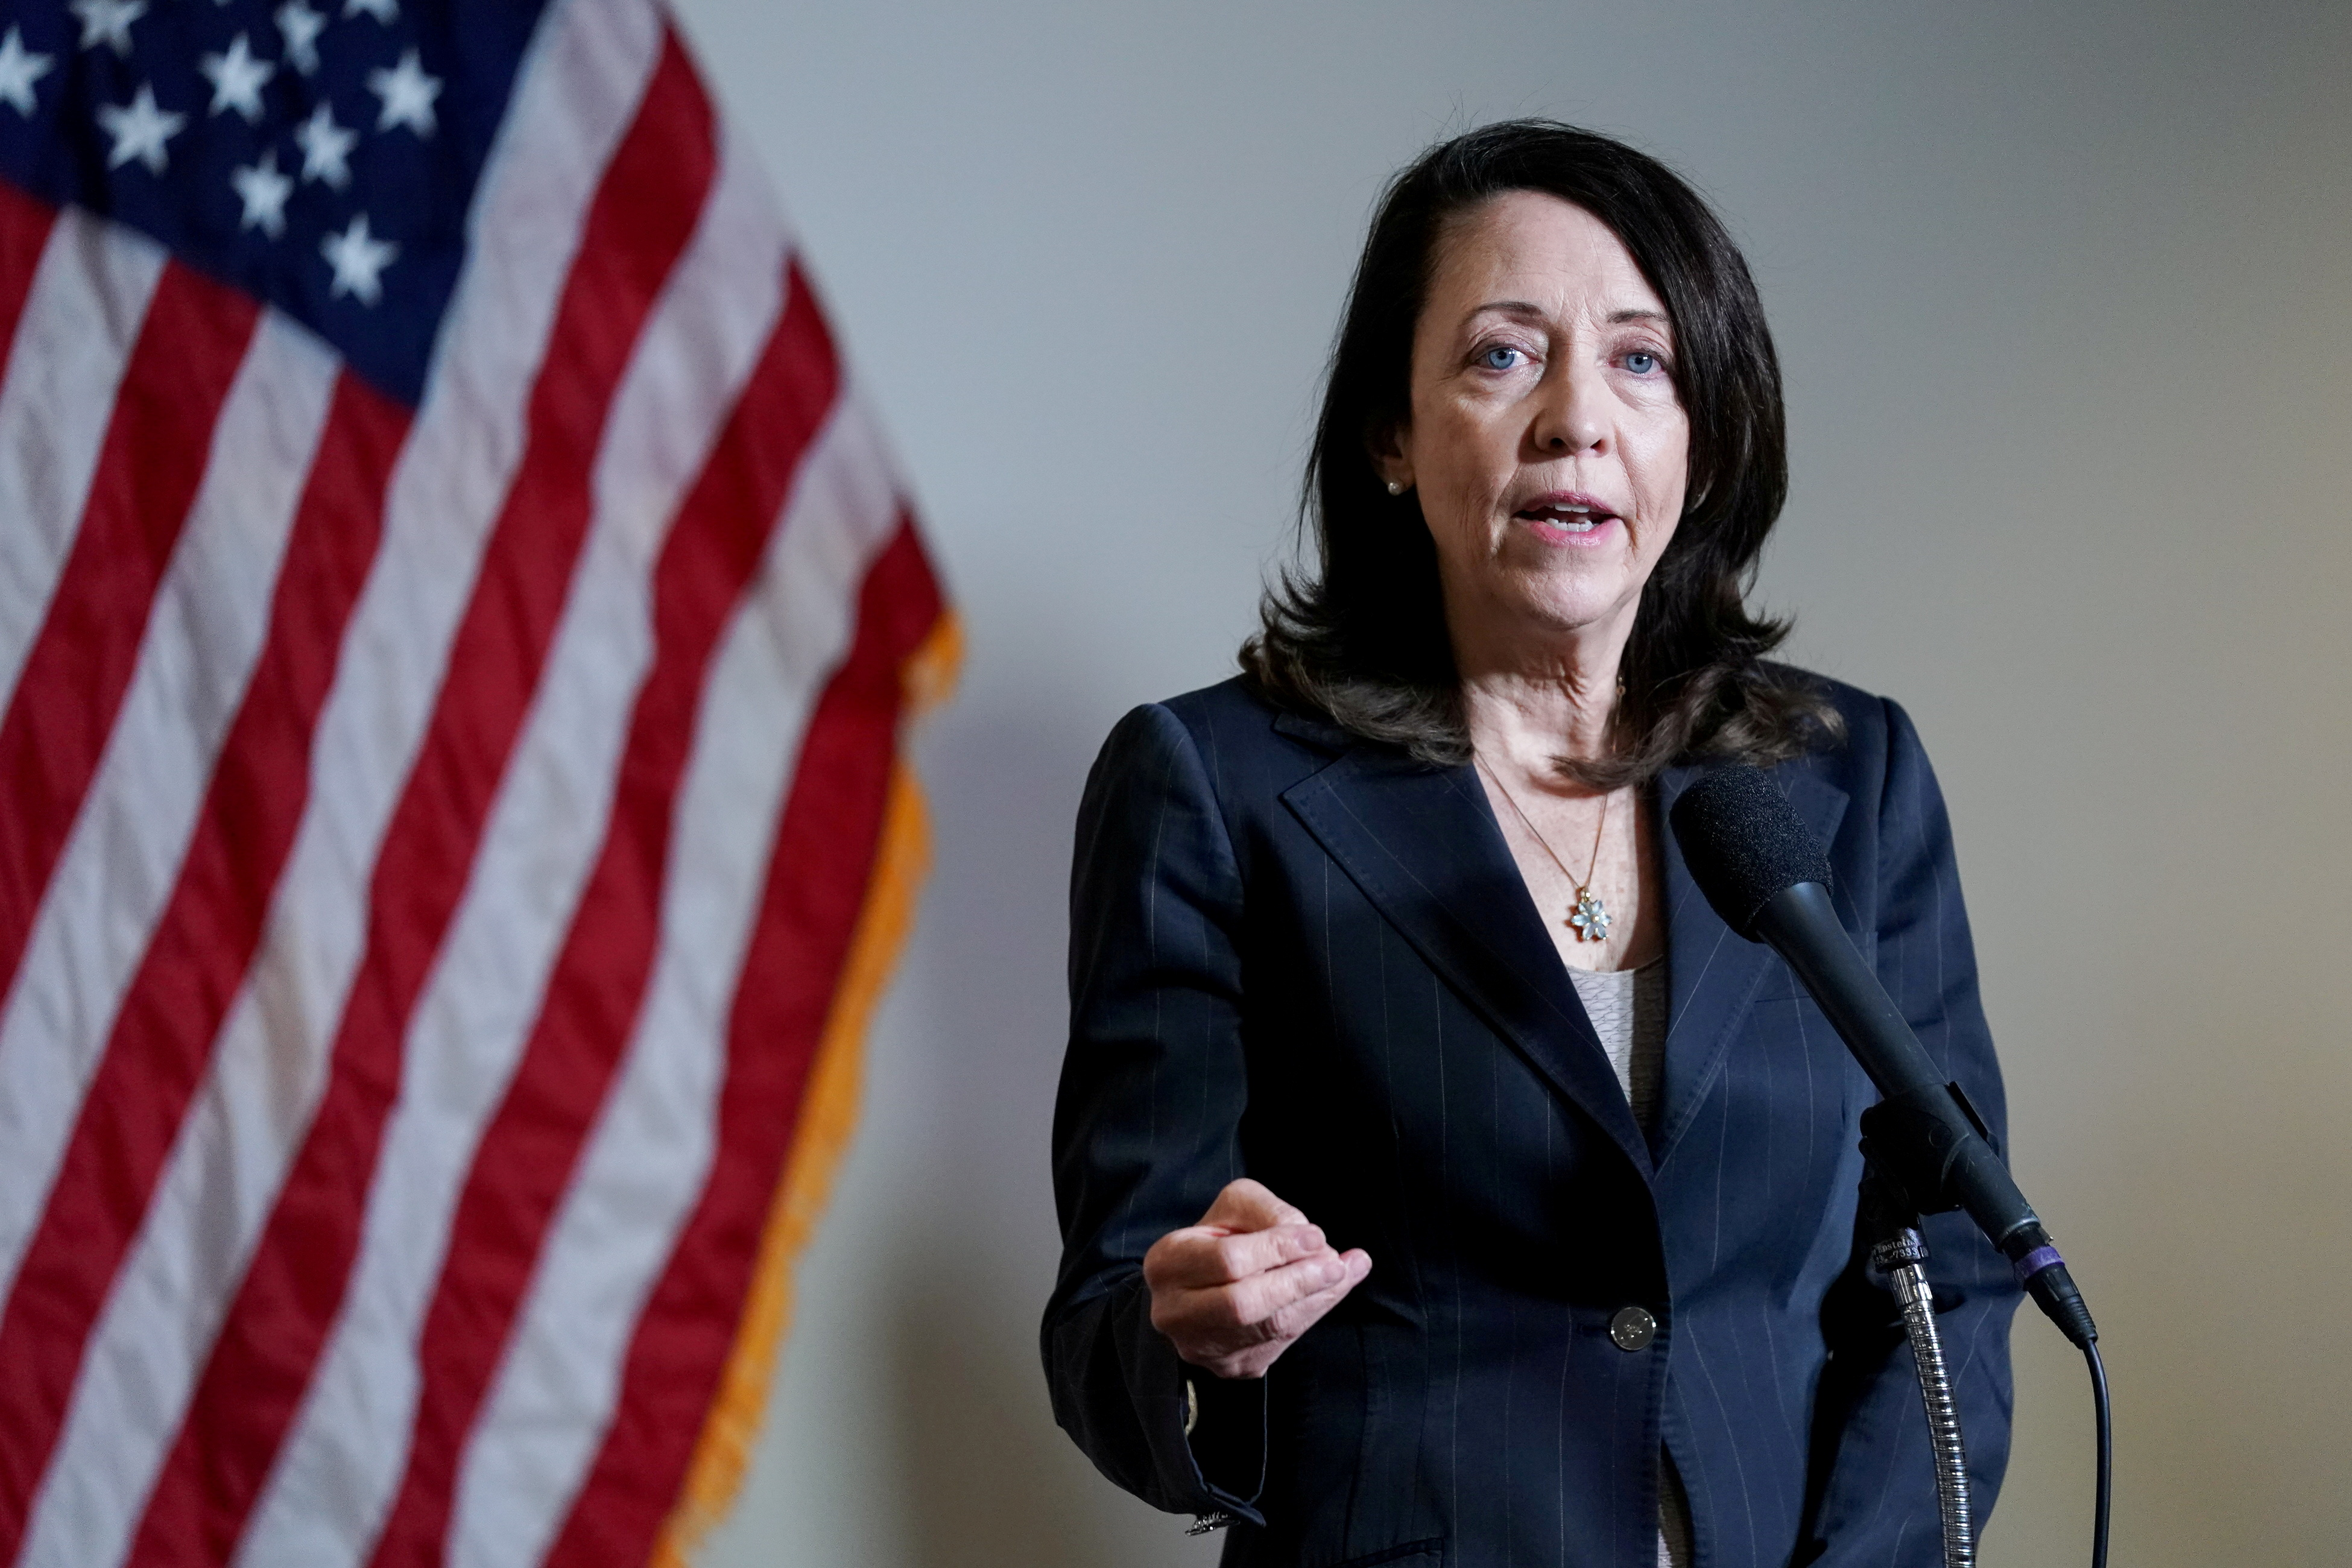 U.S. Sen. Maria Cantwell (D-WA) speaks during a news conference after the first Democratic luncheon meeting since COVID-19 restrictions went into effect on Capitol Hill in Washington, U.S. April 13, 2021. REUTERS/Erin Scott/File Photo